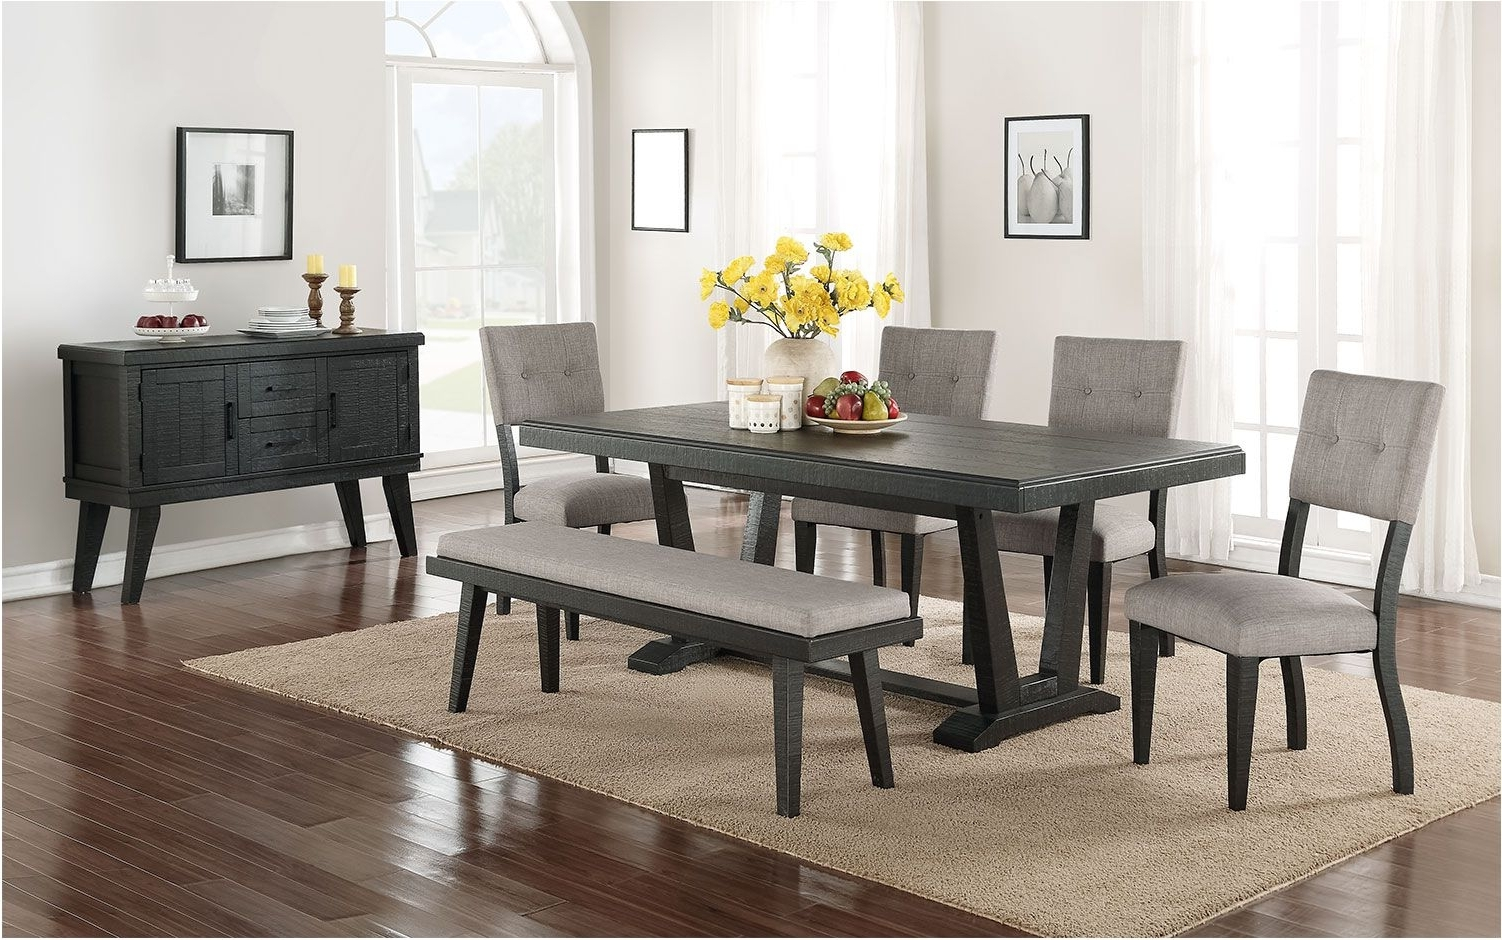 Leon Dining Tables For Newest Stunning 6 Piece Dining Room Set Black And Grey Leon – Dining Room (View 22 of 25)